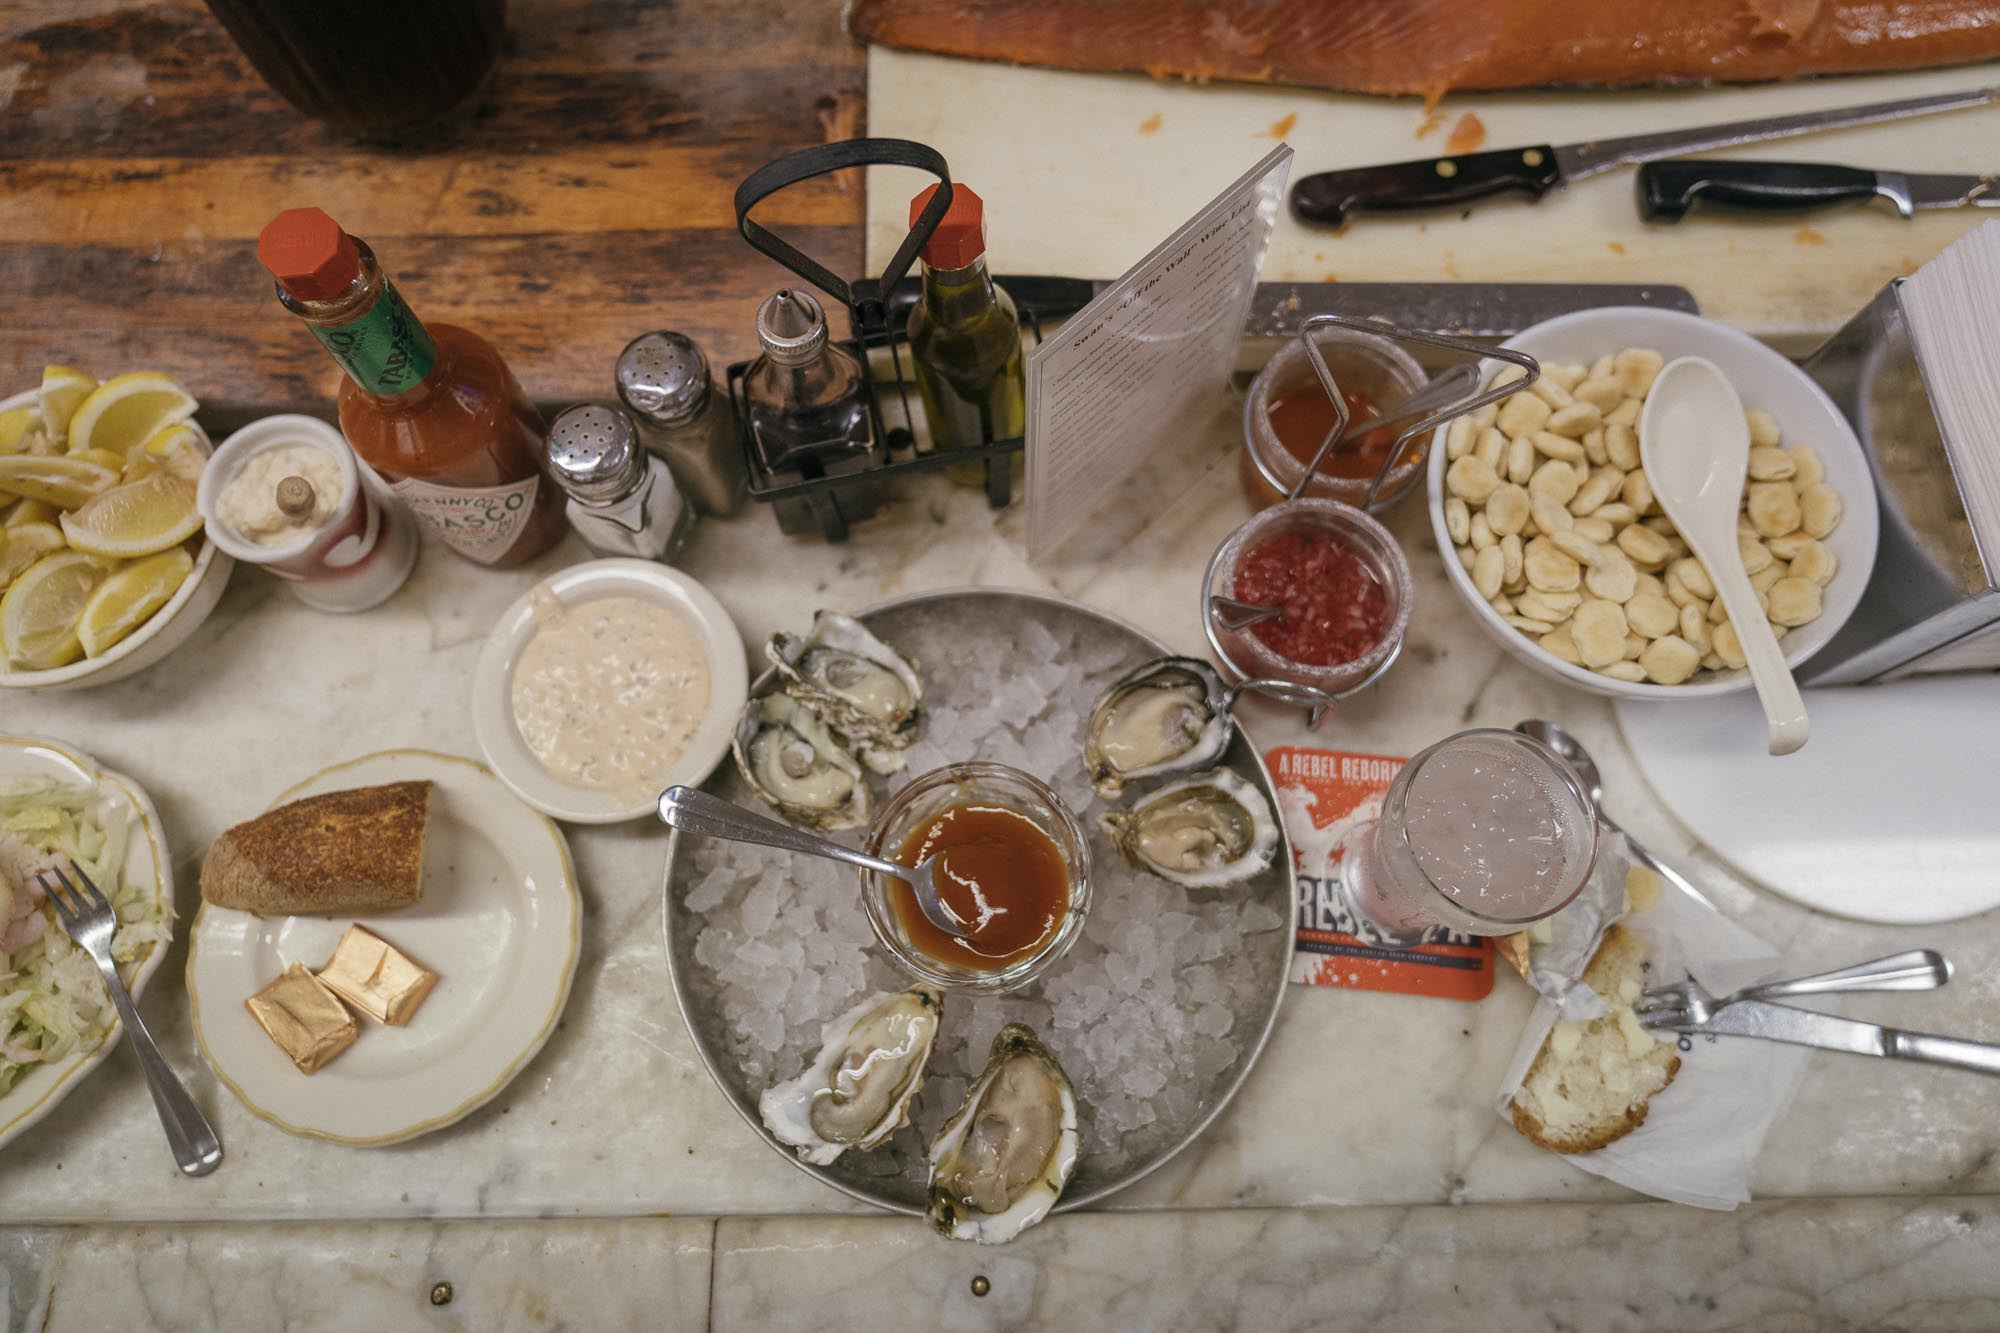 A Seafood spread at Swan oyster Co in San Francisco for Dirt Road Travels